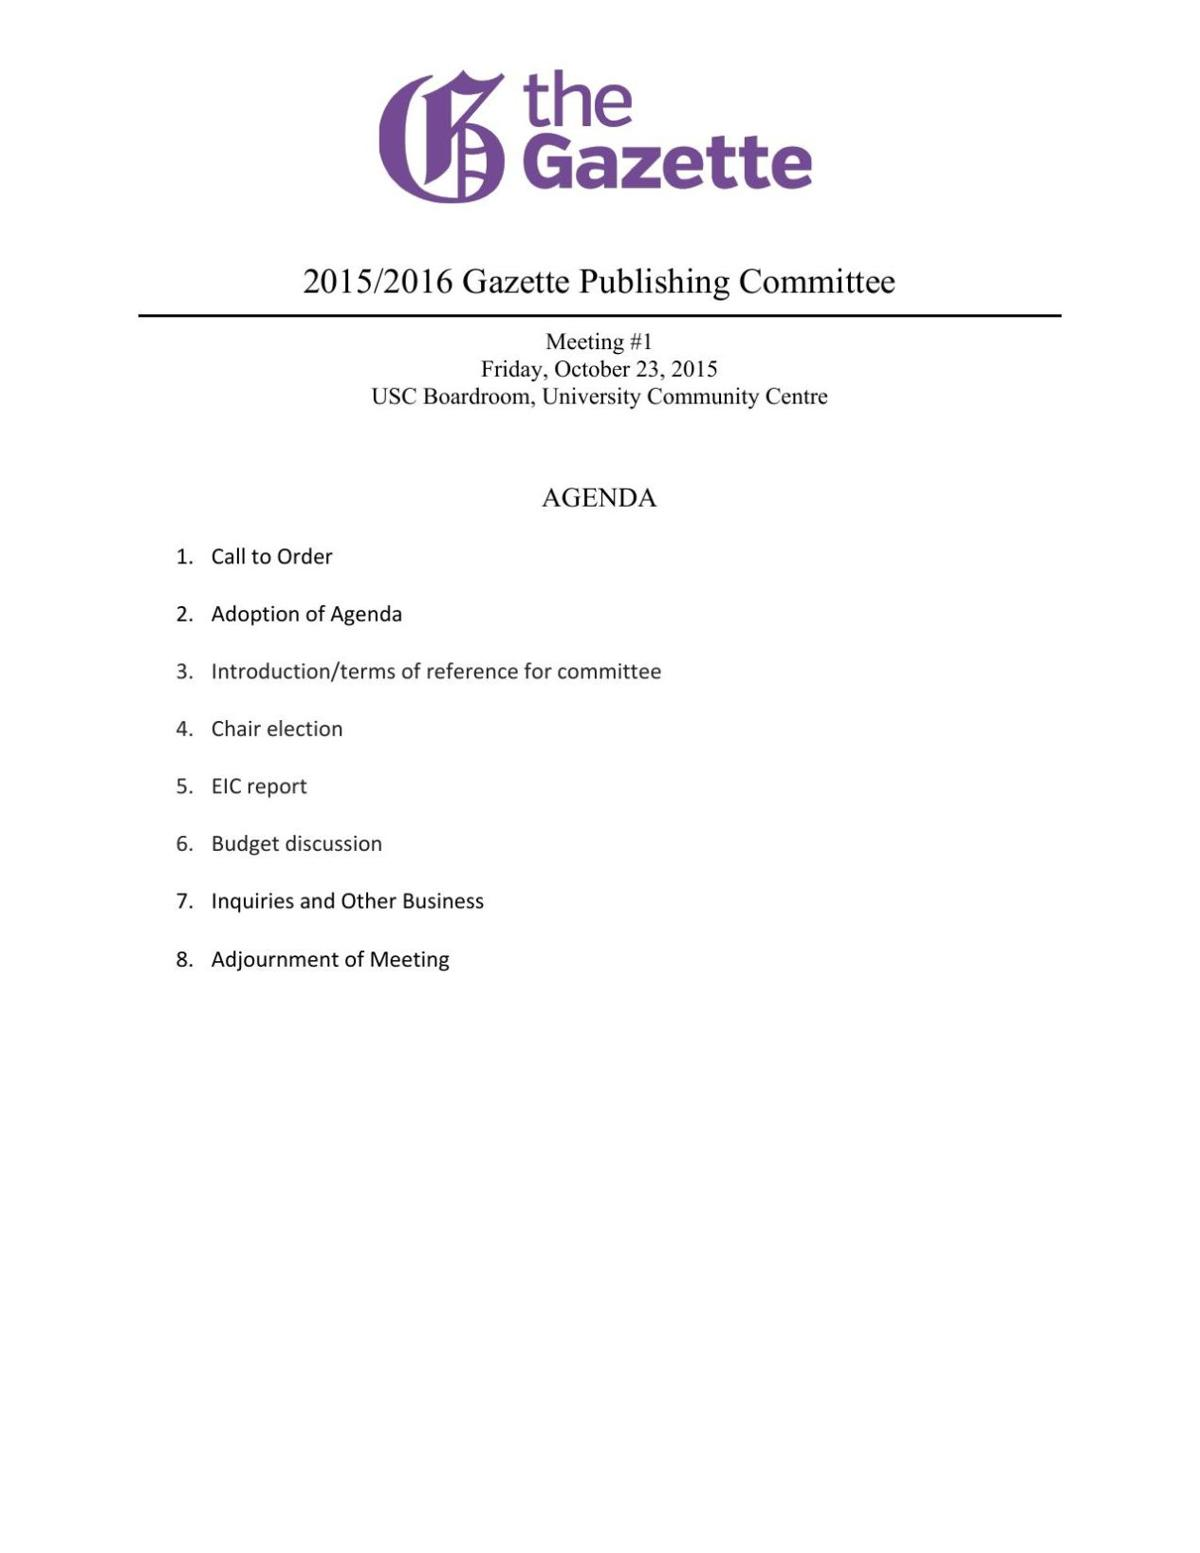 Publications Committee Meeting October 23, 2015